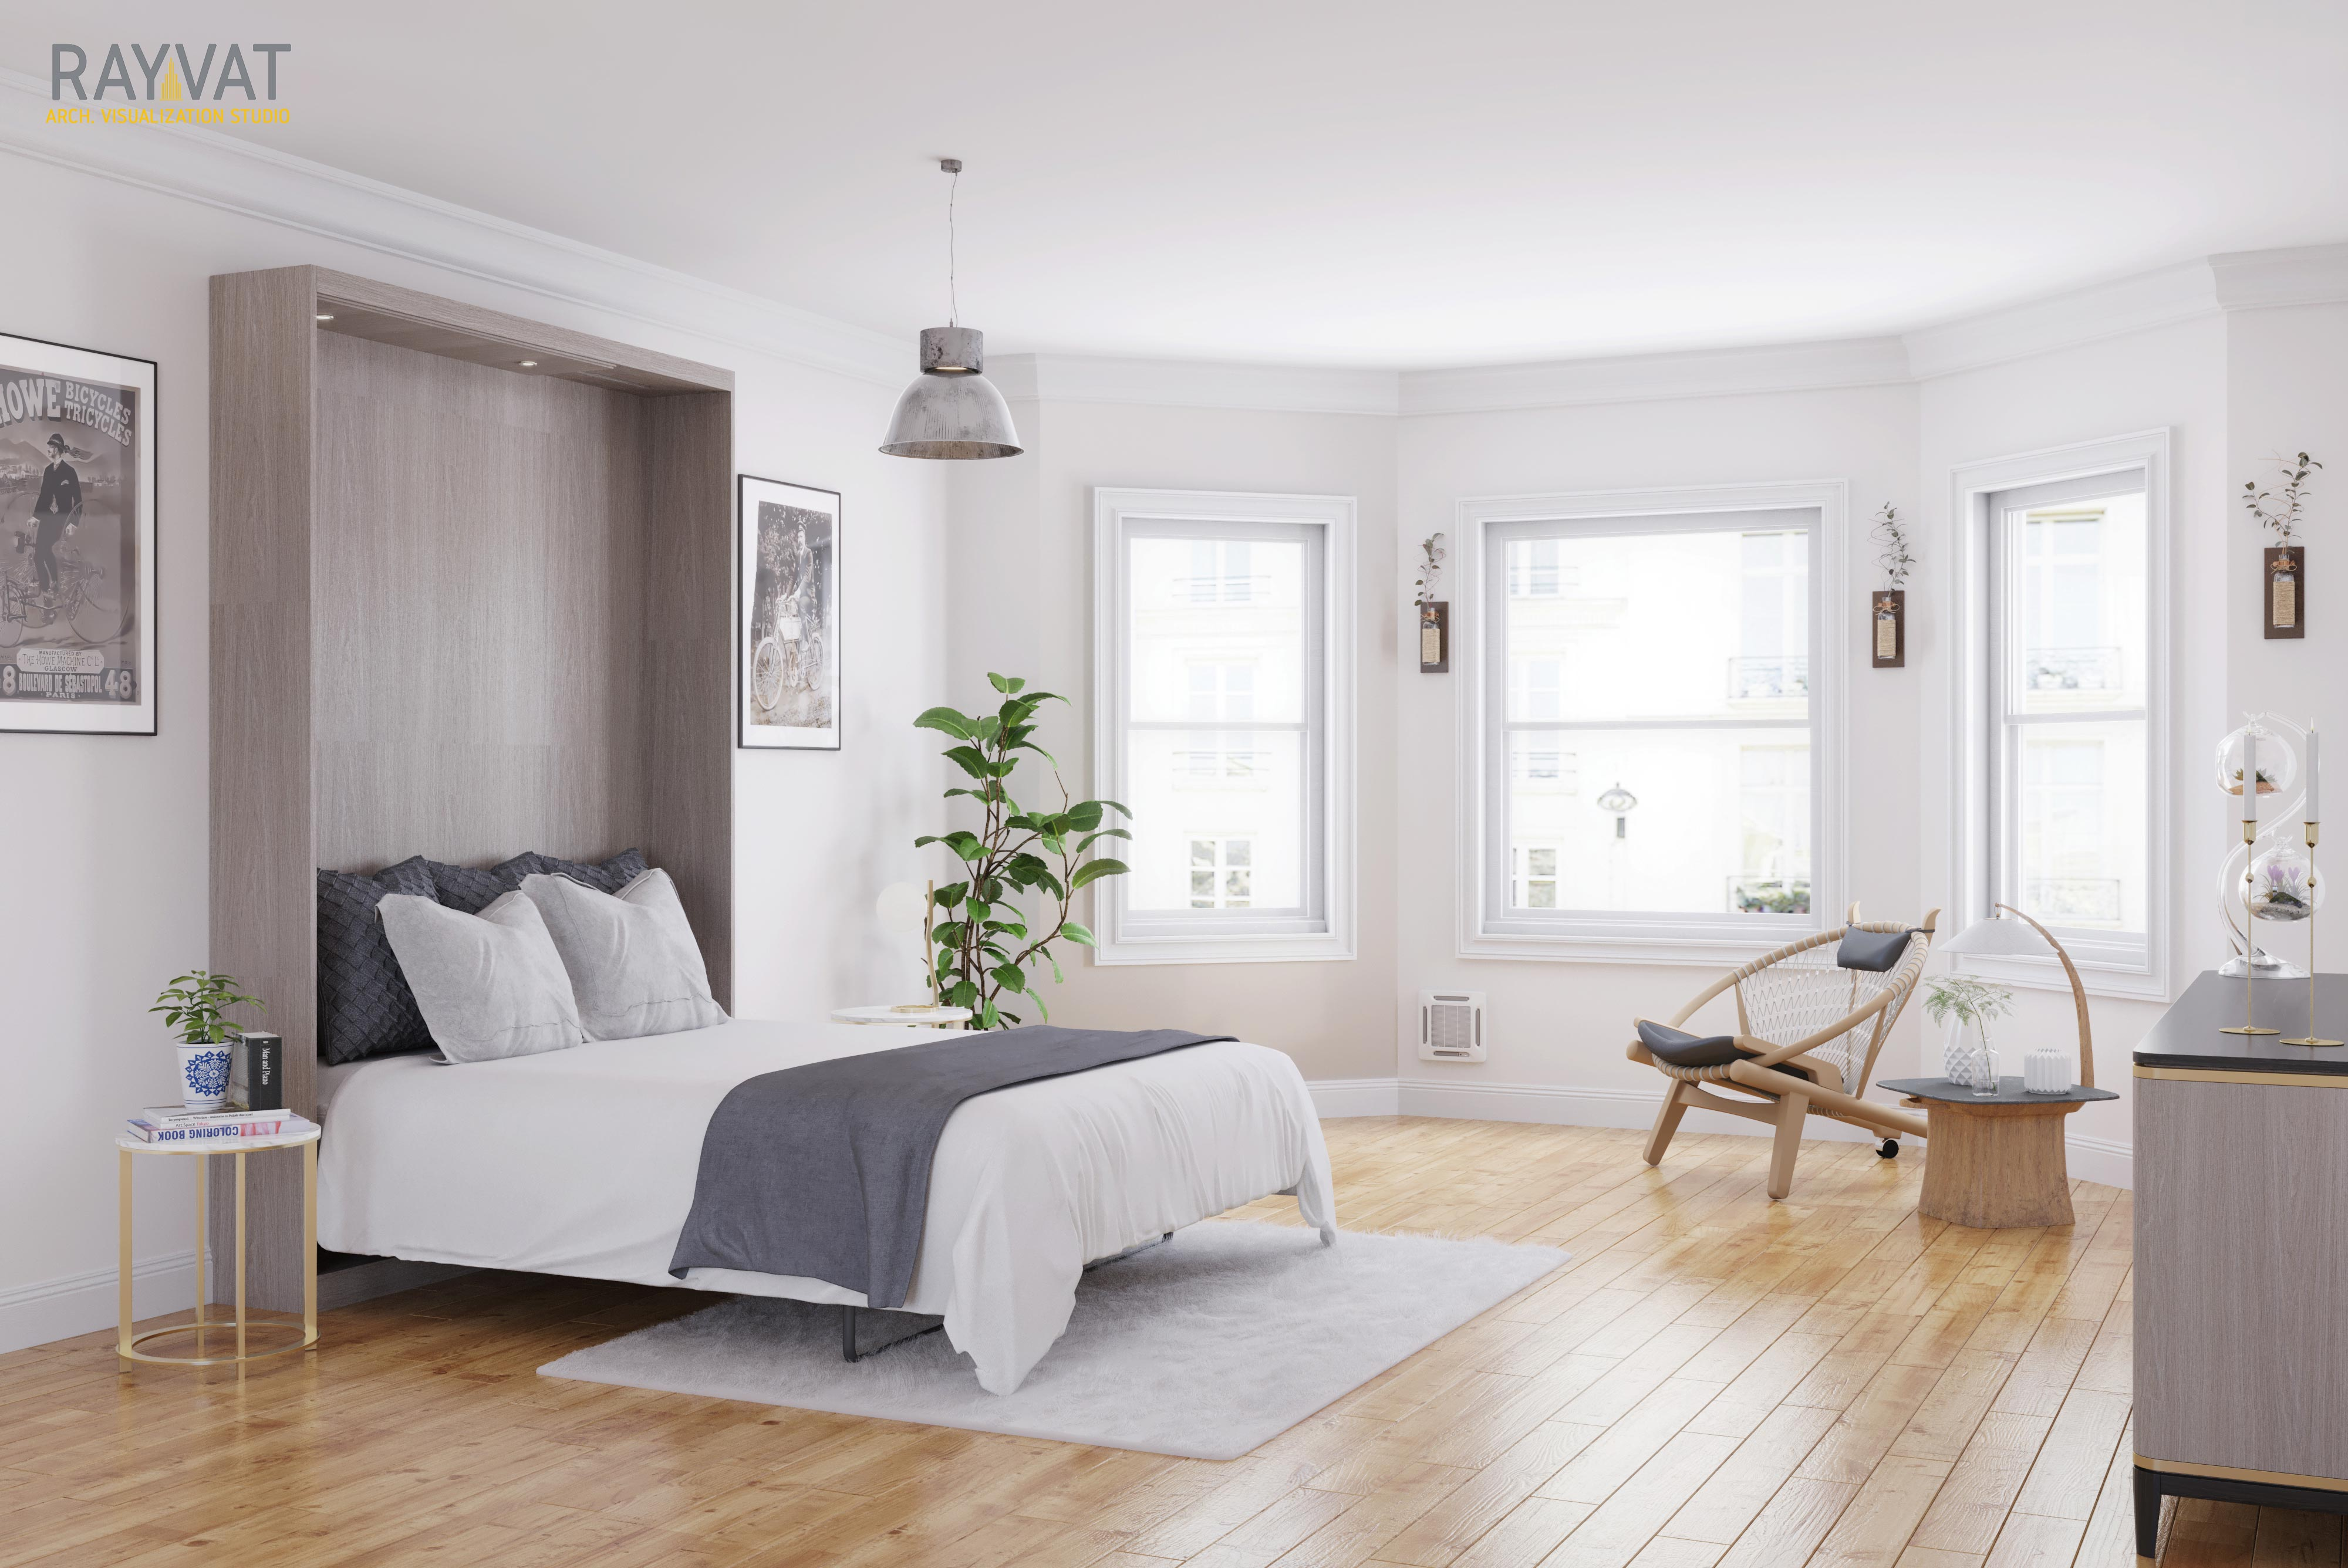 Zoom in on the details with CGI Bedroom Pictures